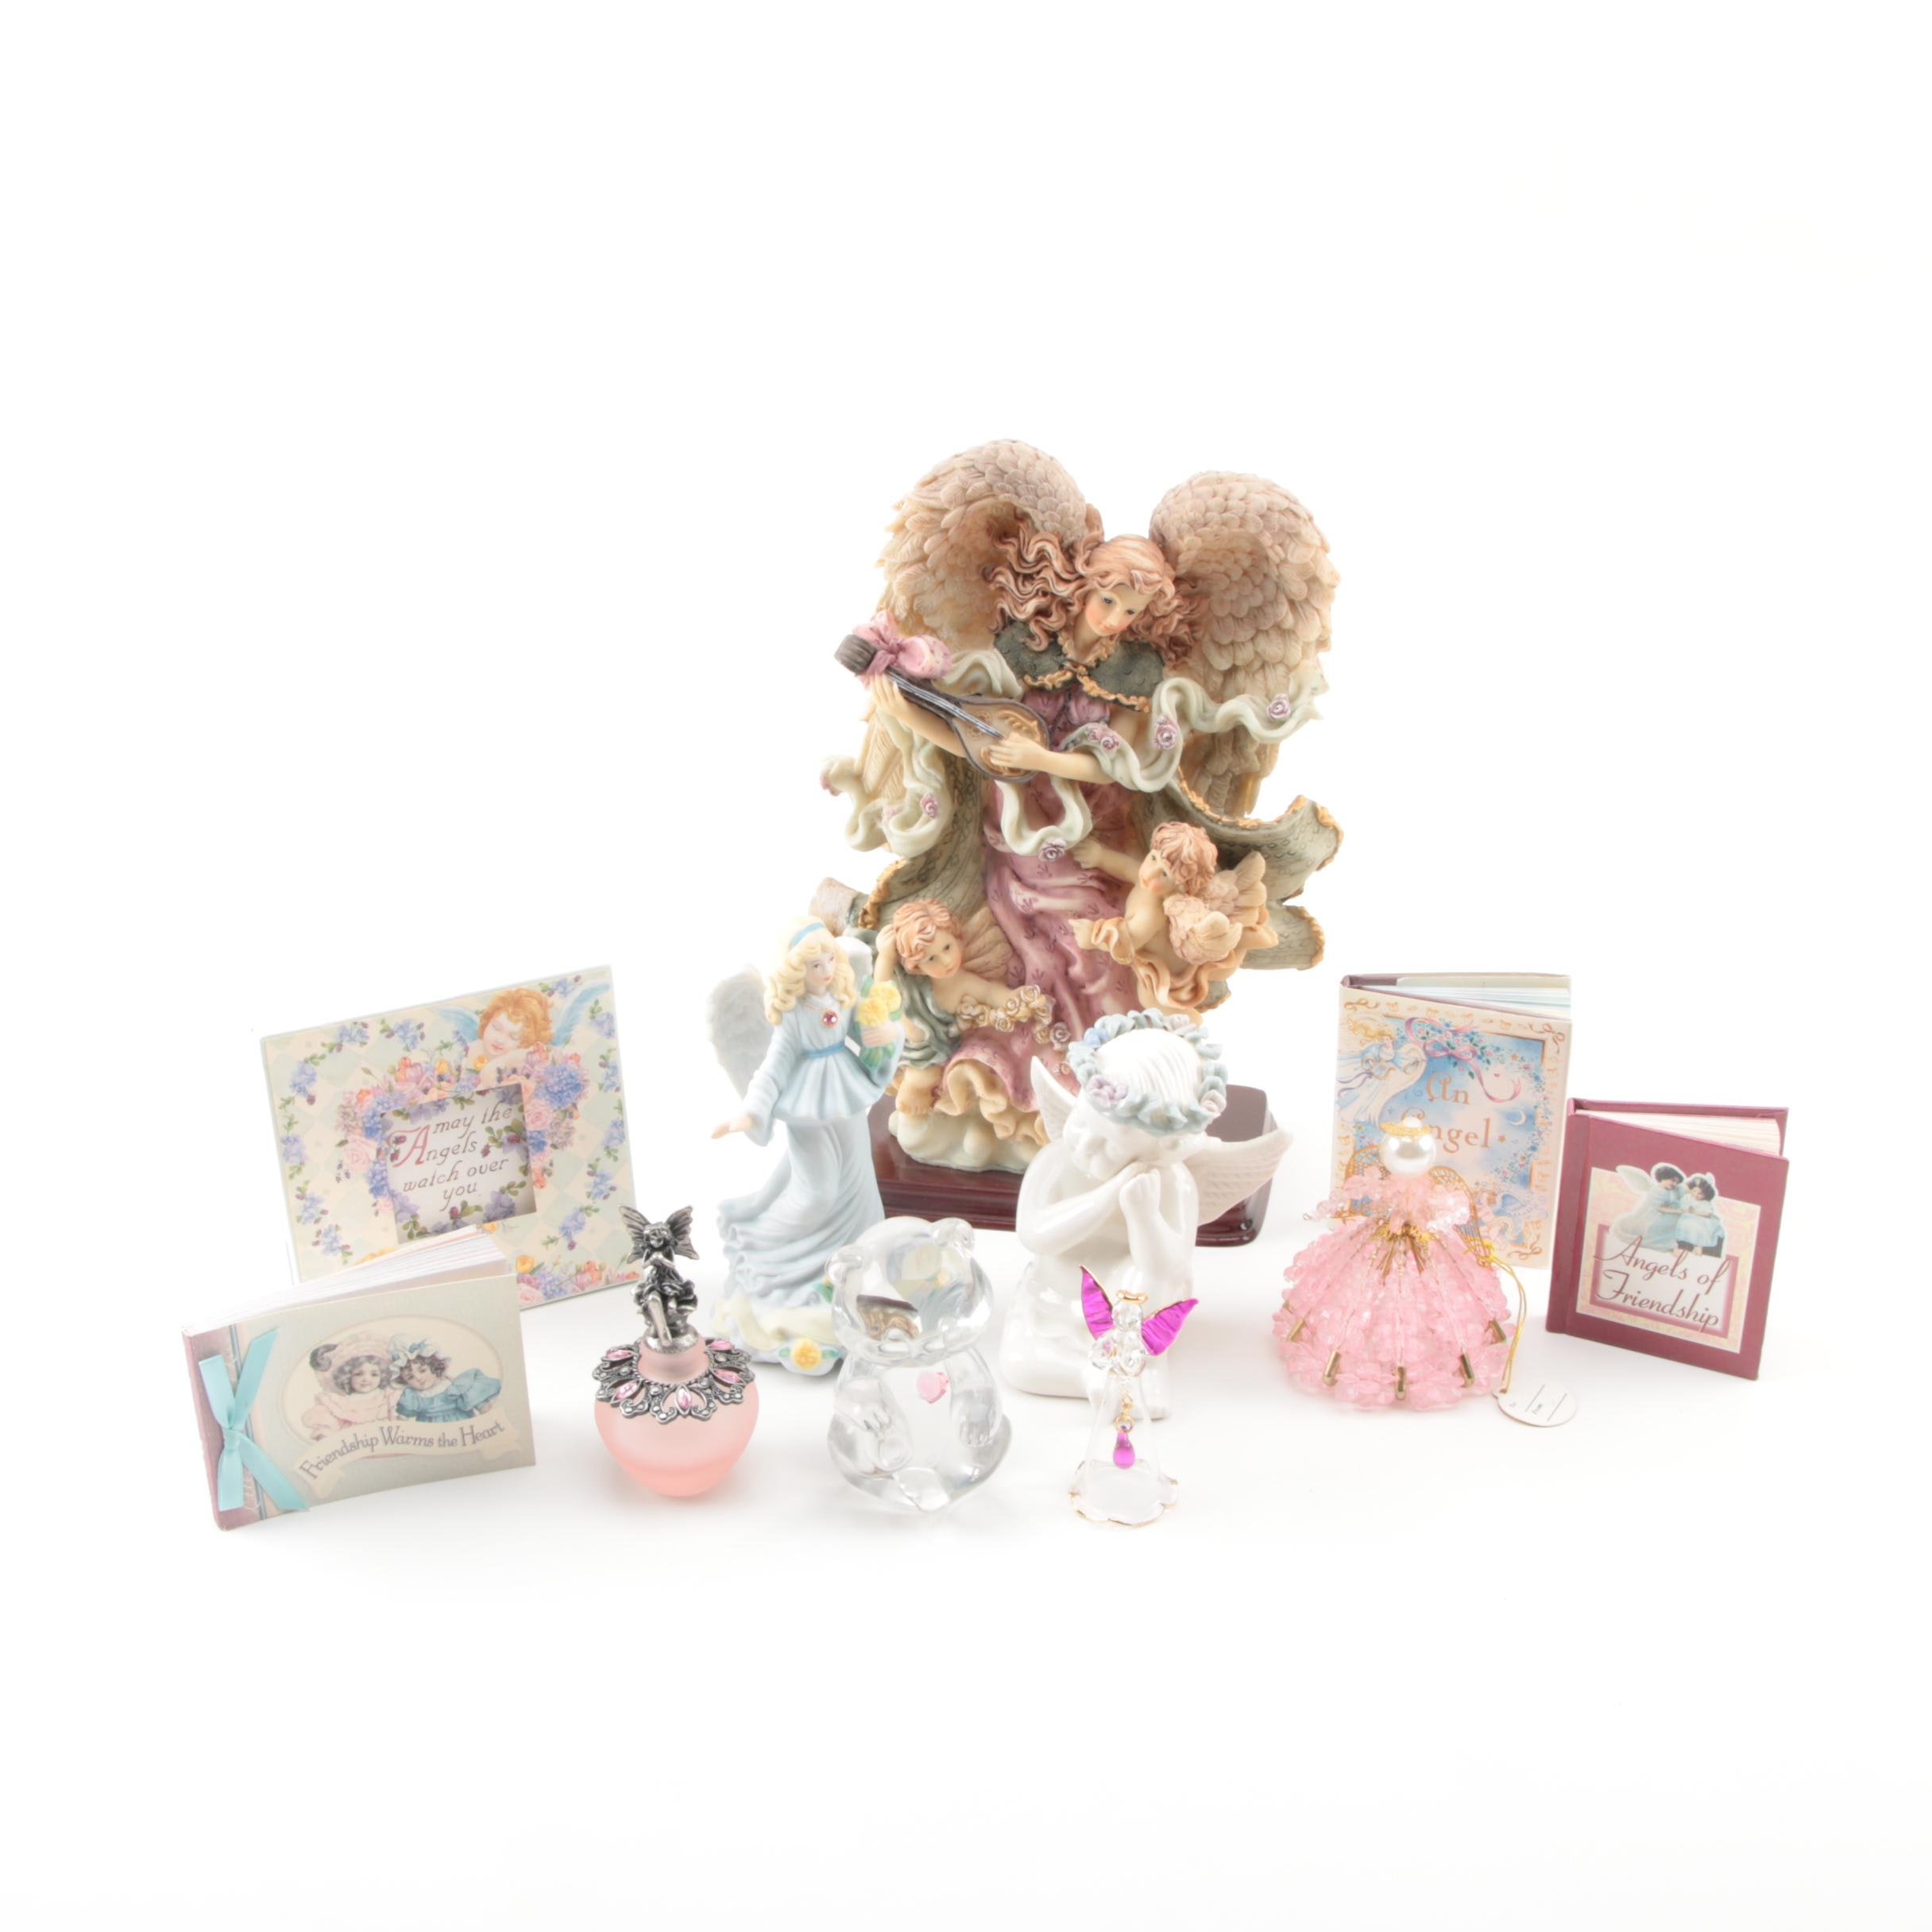 Angel Figurines and Miniature Books